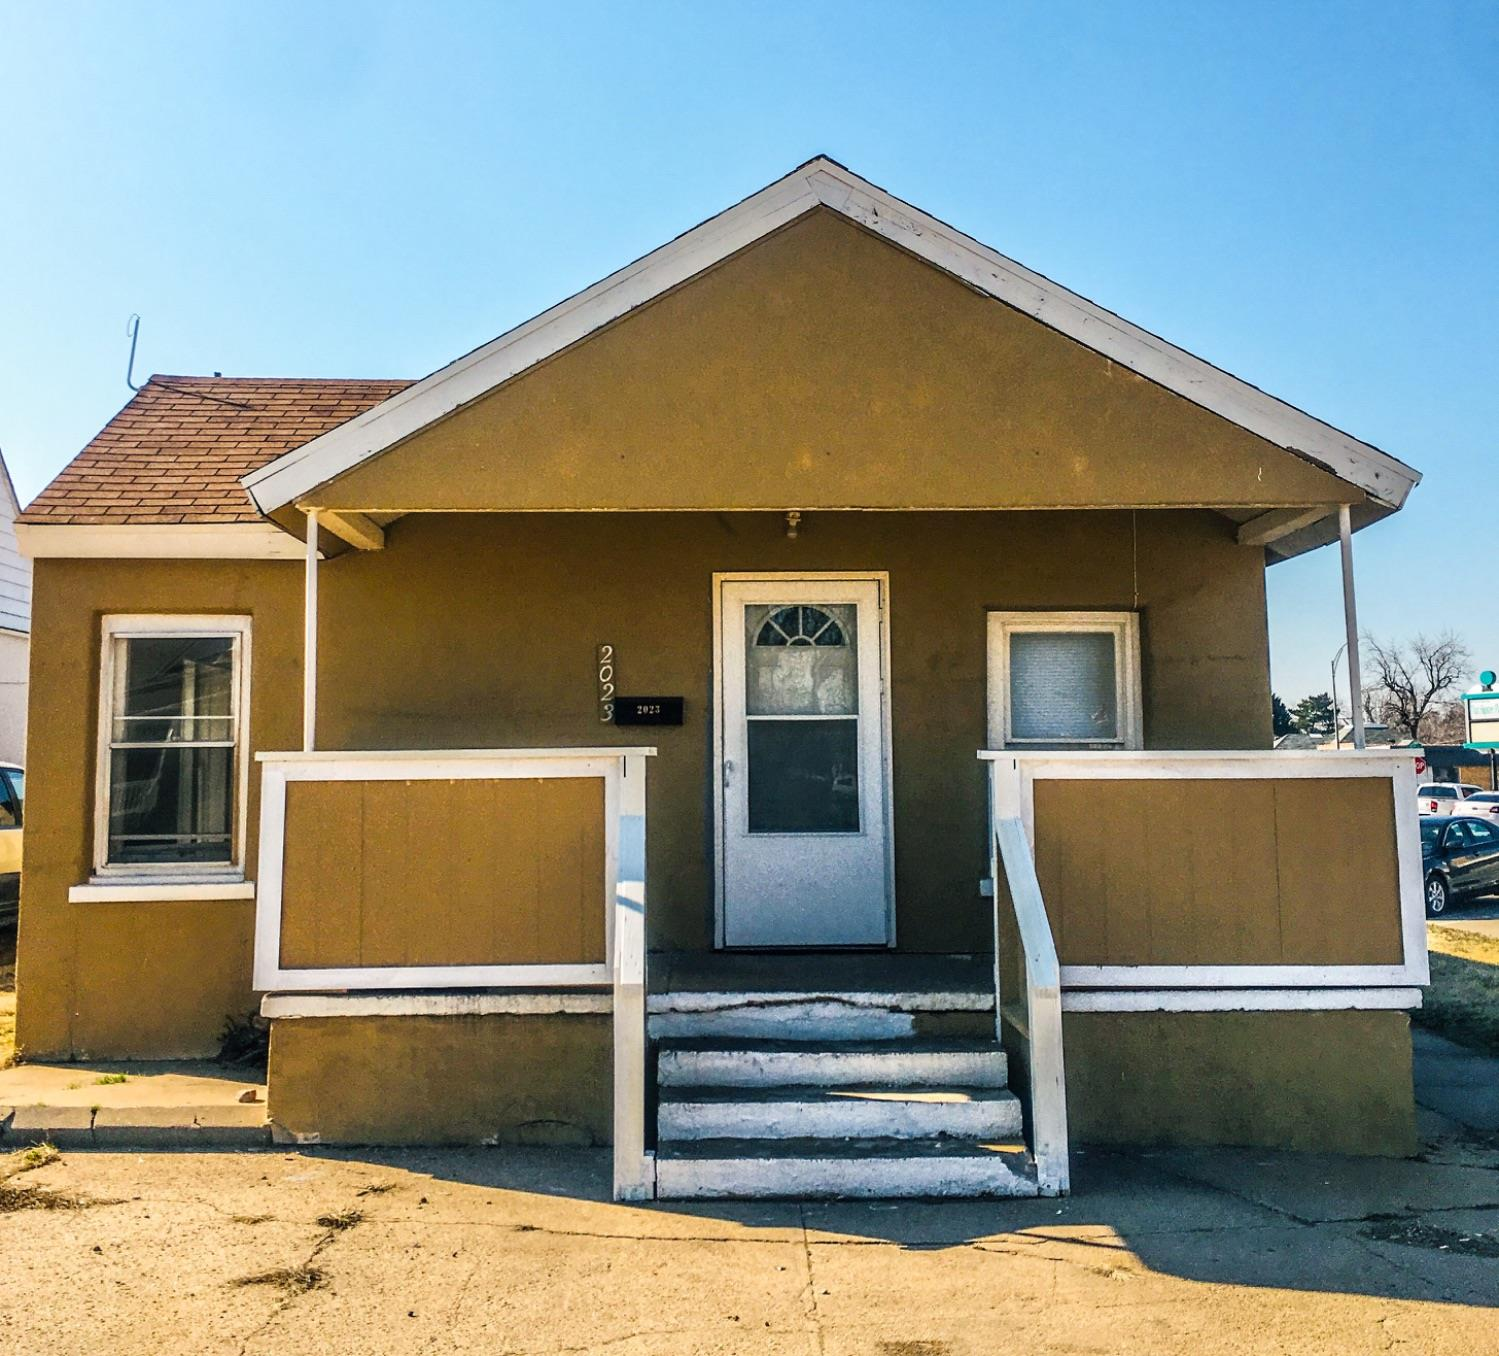 Need an office? Must see this 2 bedroom, 1 bath bungalow. Great rental investment or office space for your business. Plenty off street parking.